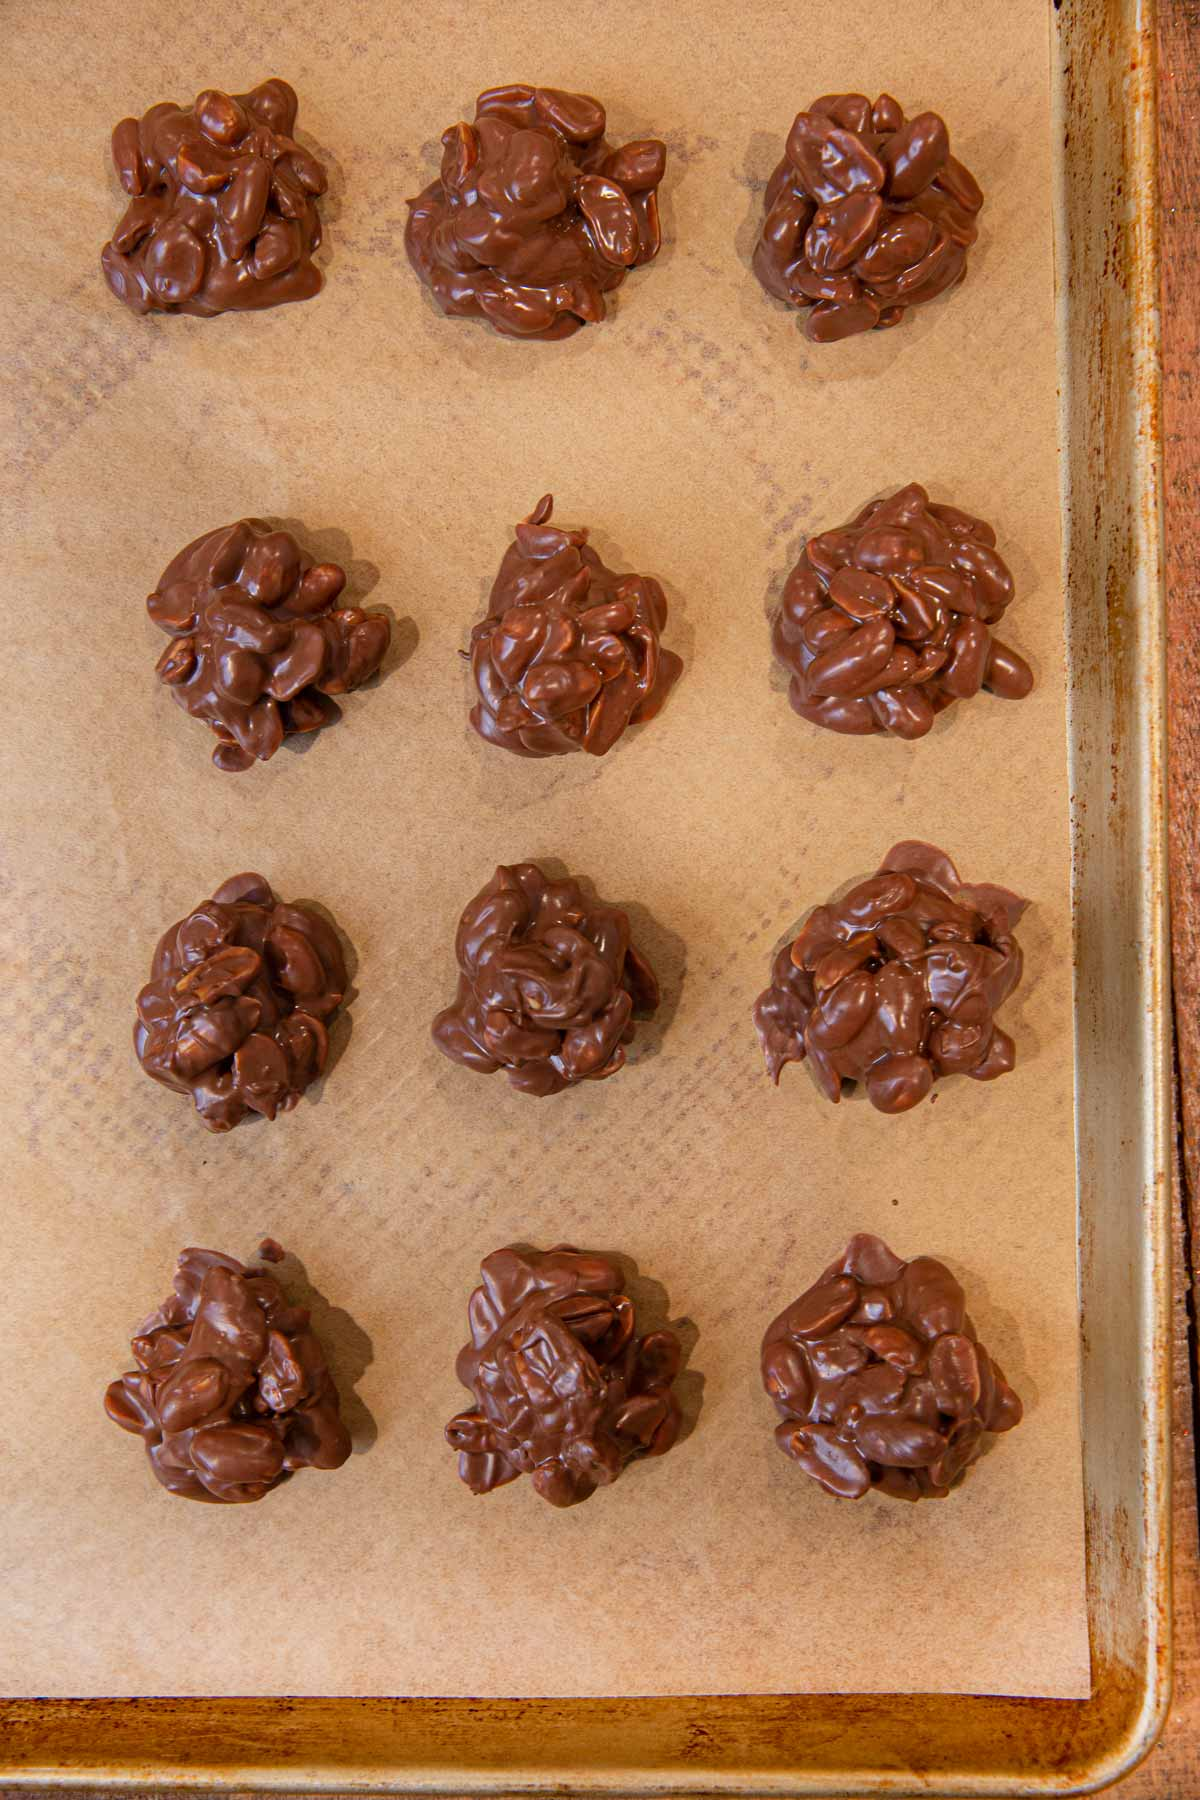 Chocolate Peanut Clusters on baking sheet